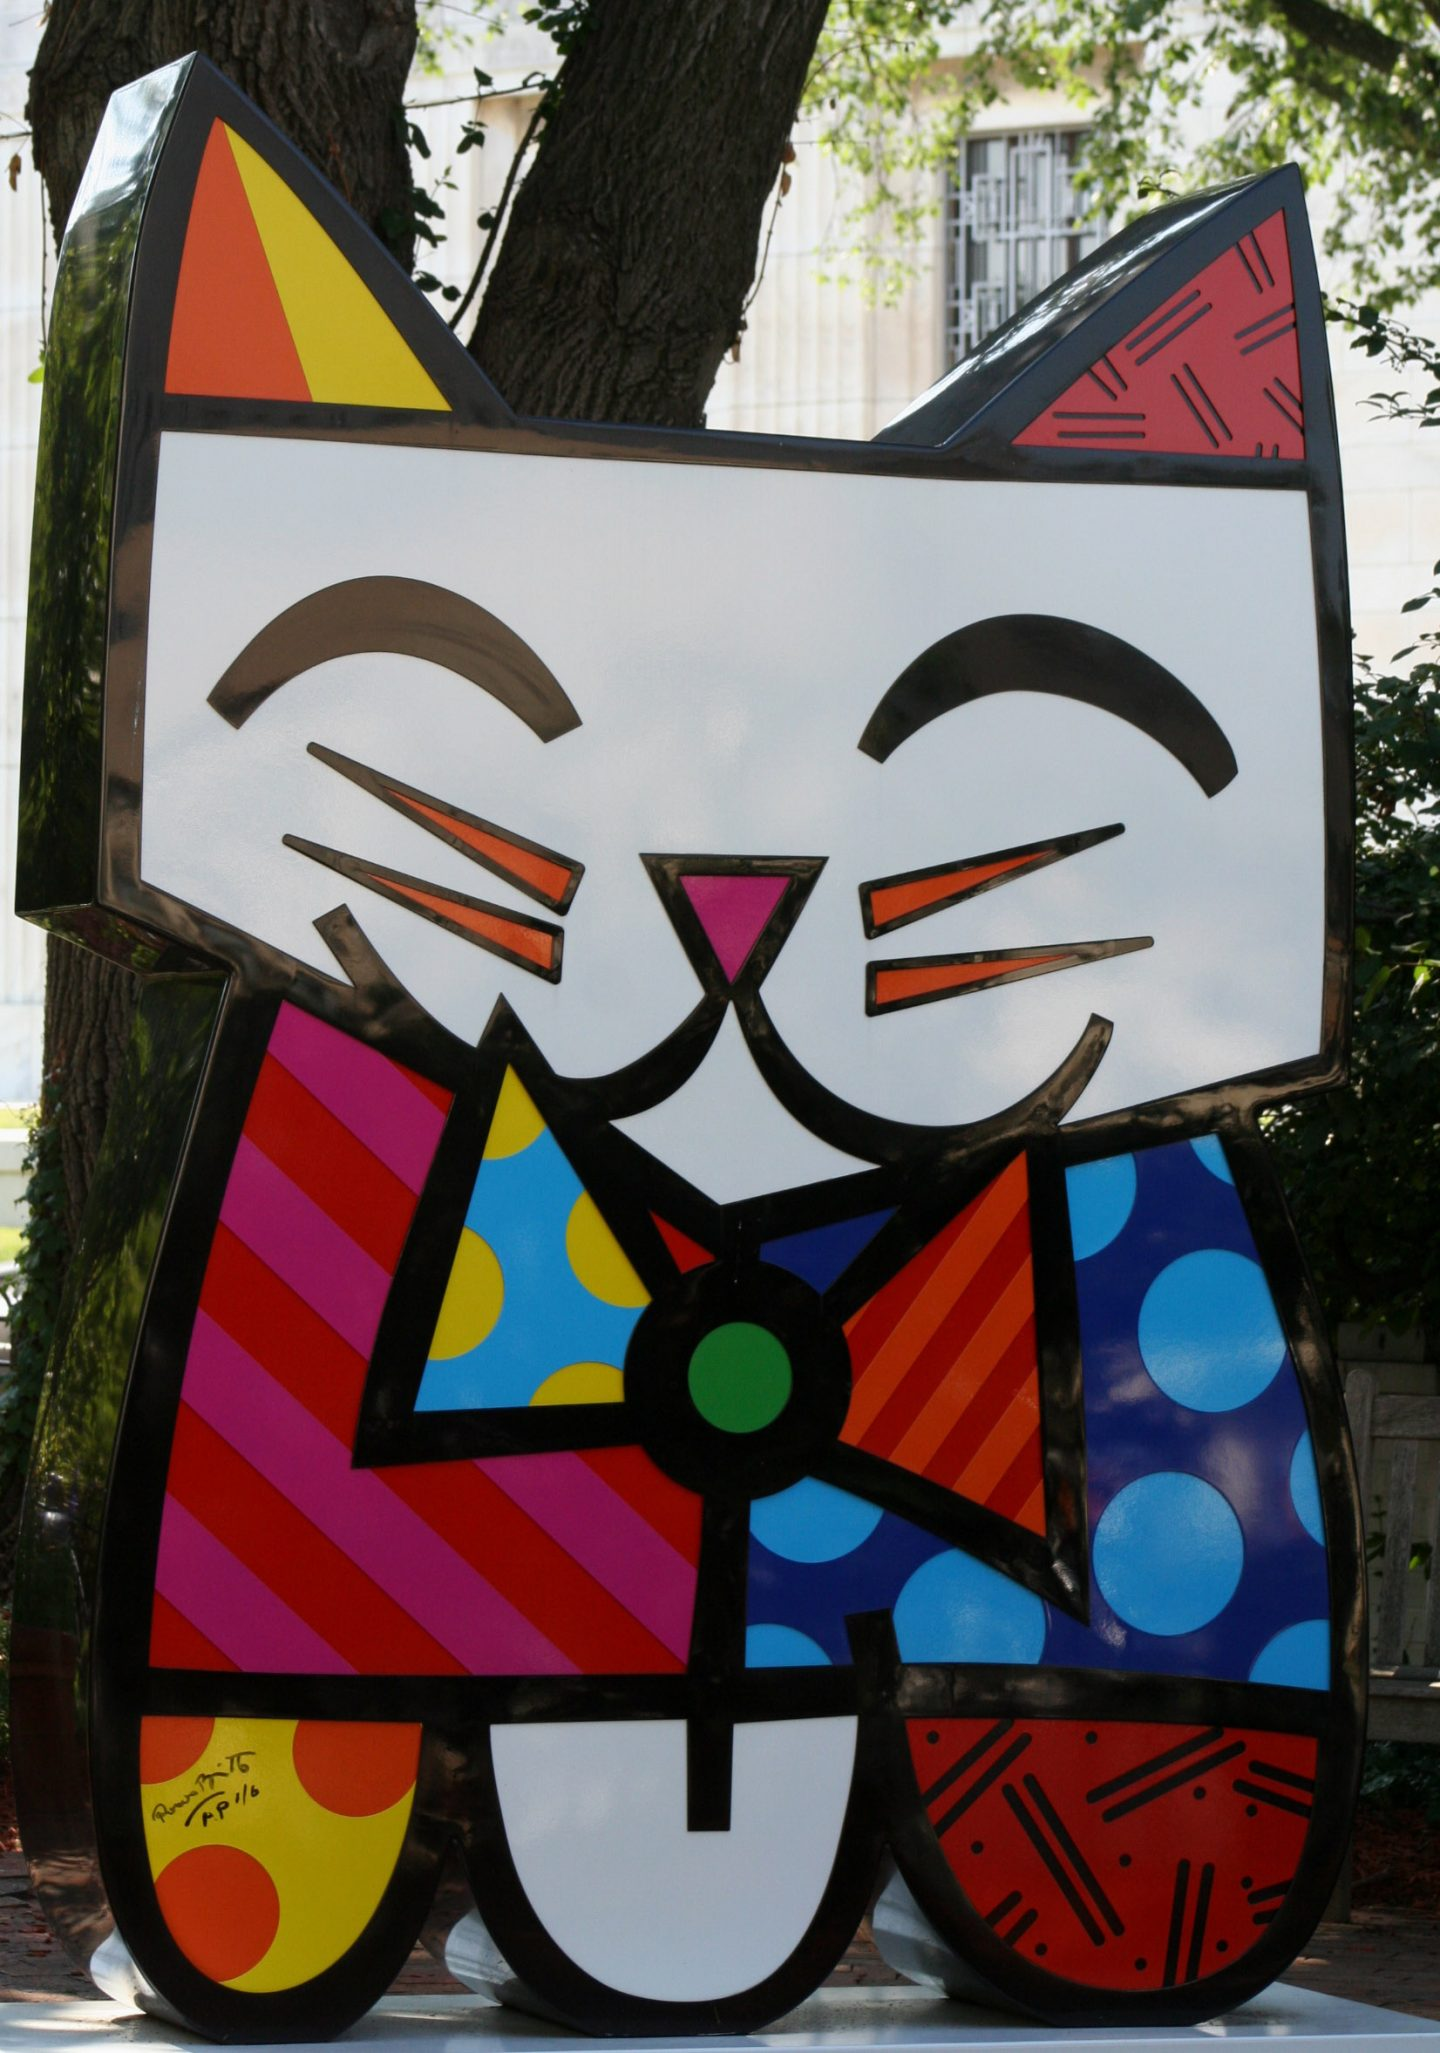 Artist Romero Britto by dbking (David) on Flickr under Creative Commons Lience 2.0.